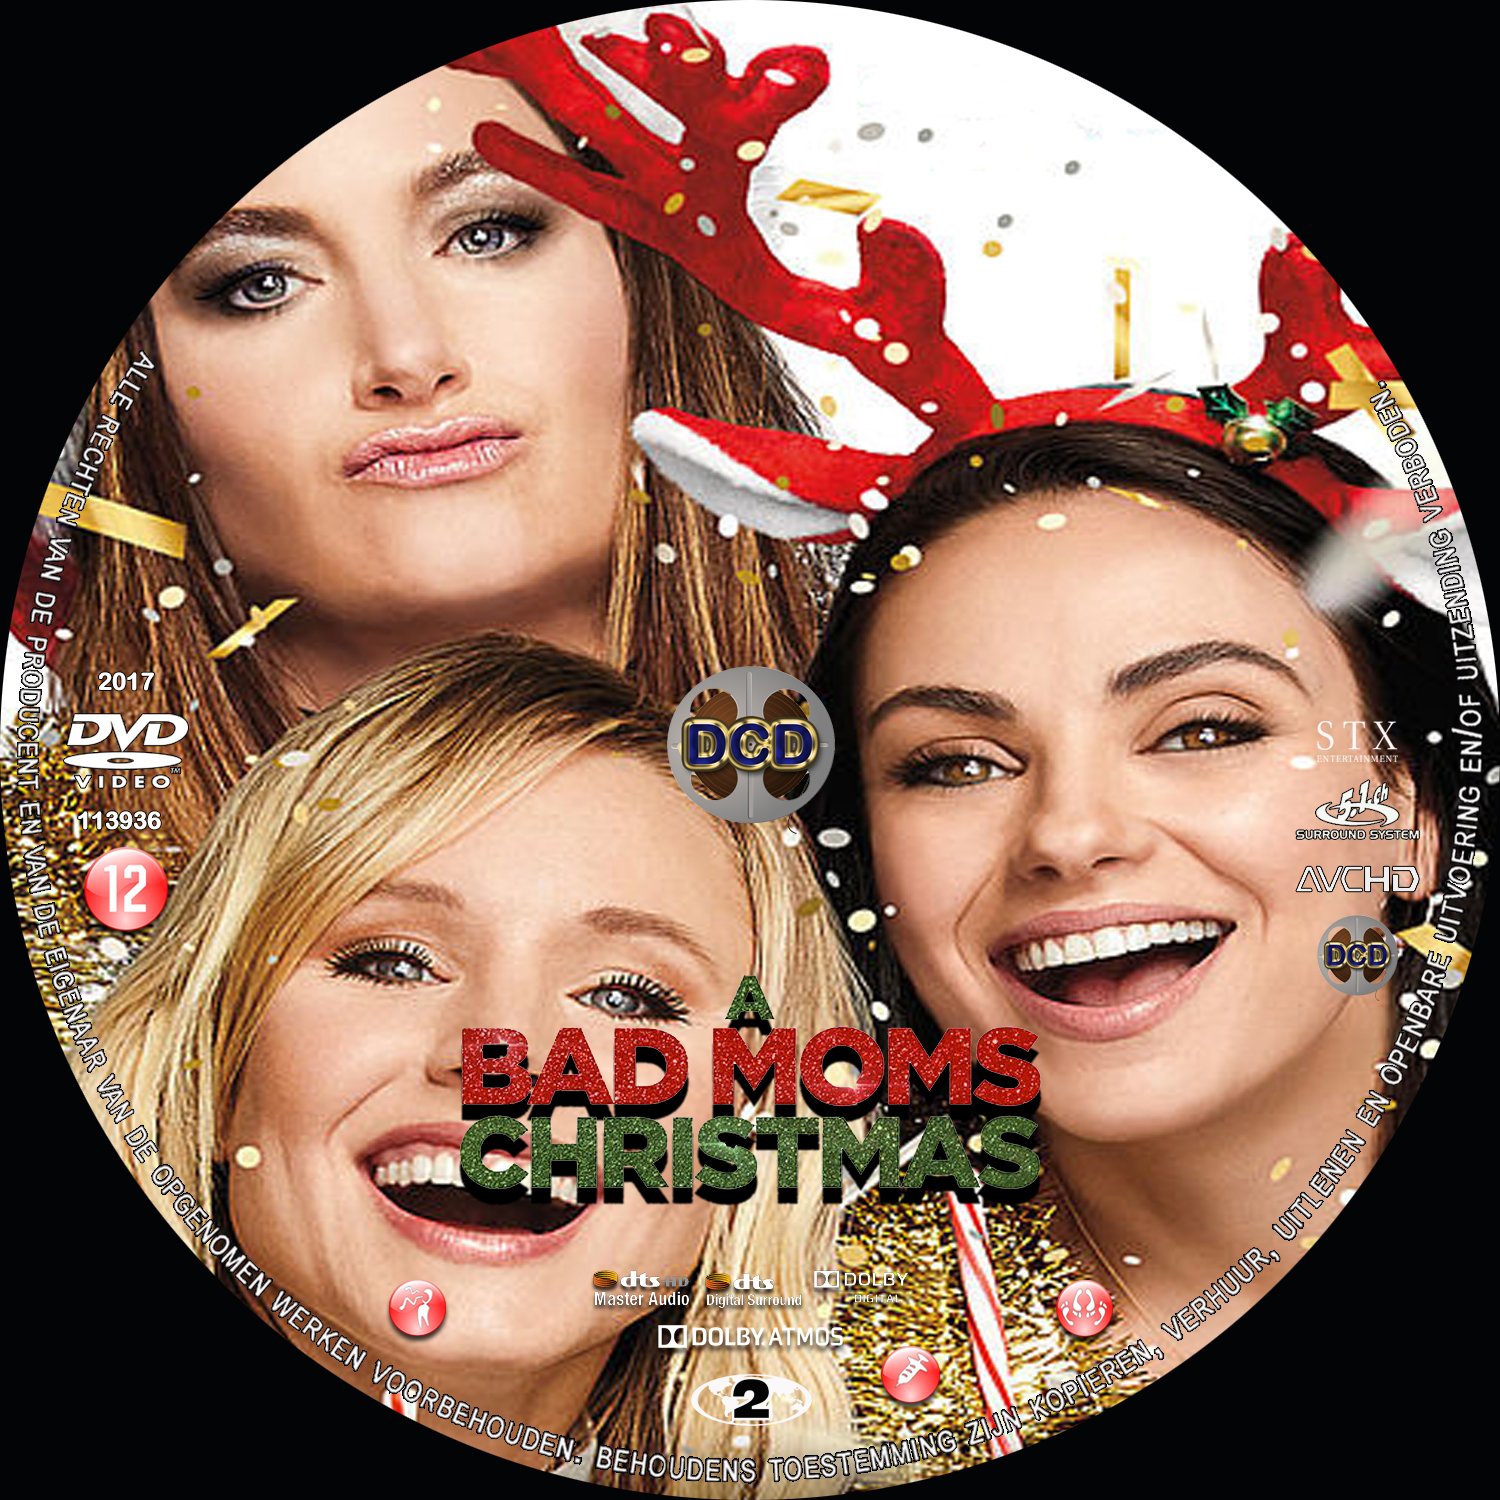 A Bad Moms Christmas Dvd Cover.A